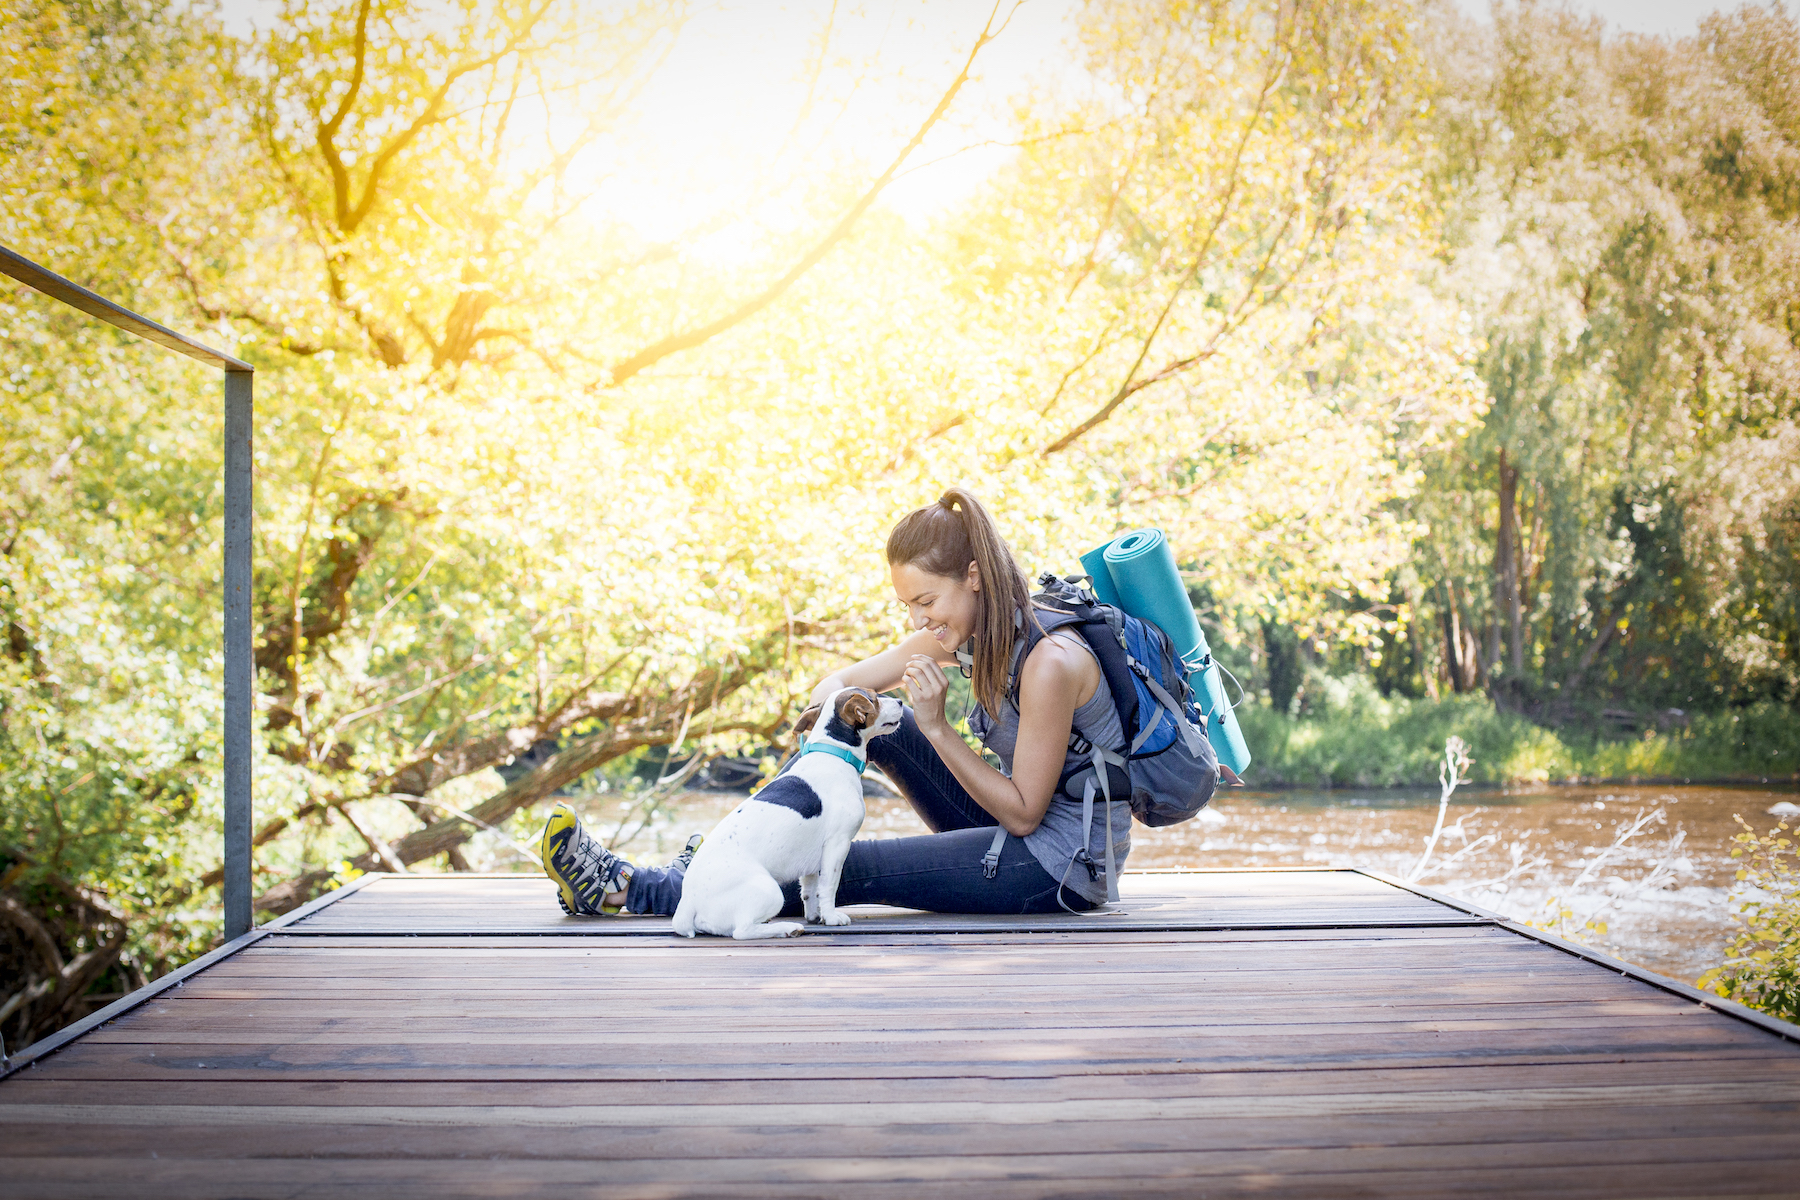 lifestyle-travel-animal-photography-girl-woth-dog-jack-russel-hiking-adventures.jpg